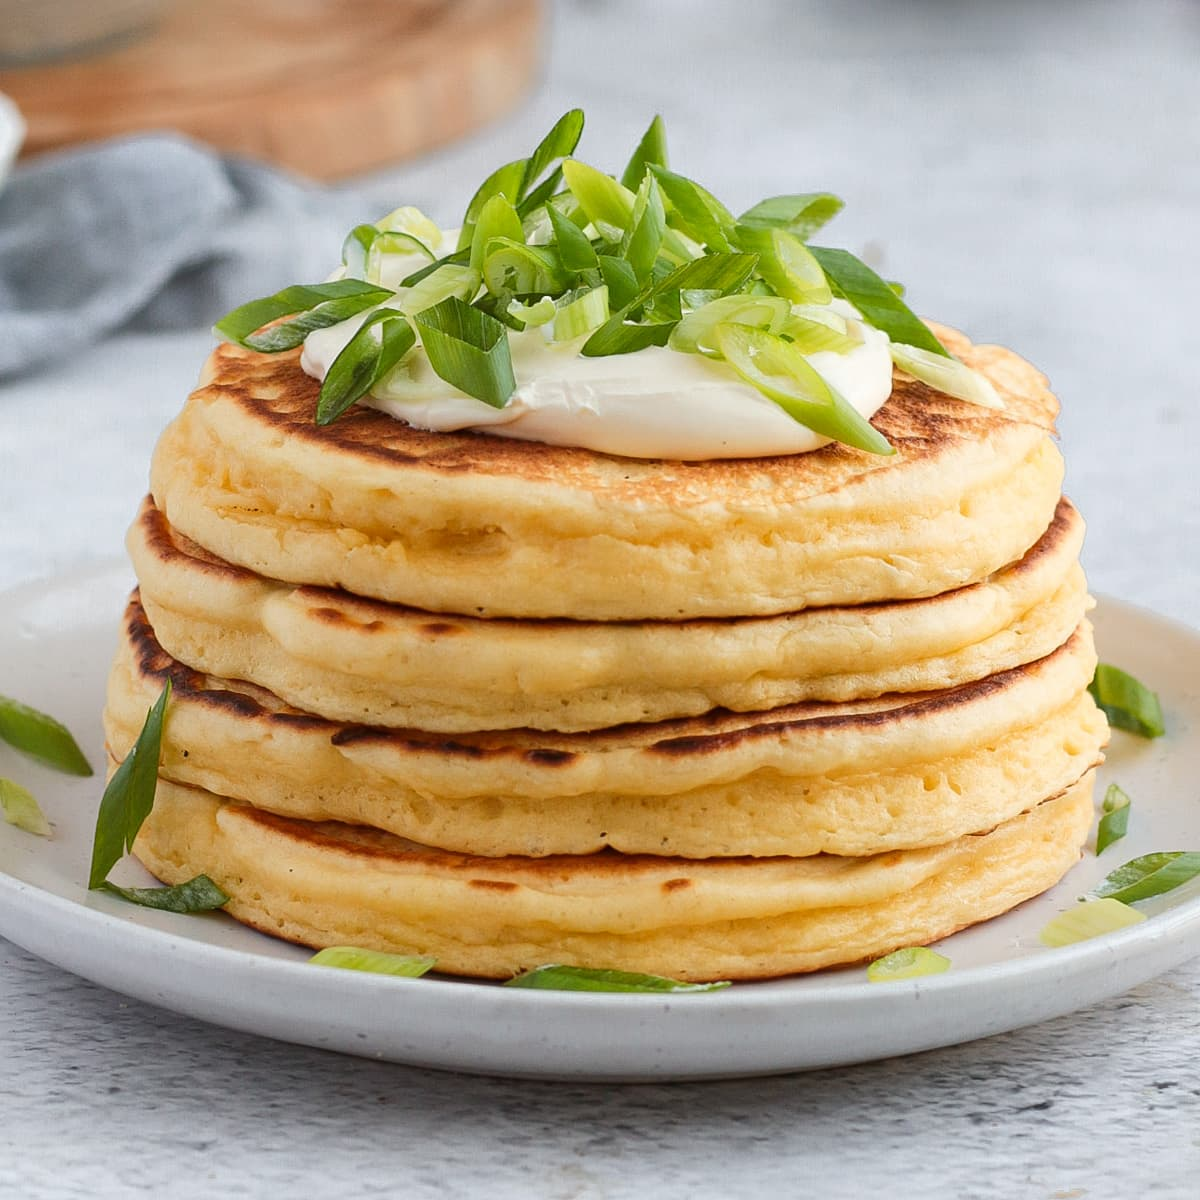 Close up on a stack of 4 pancakes on a white plate